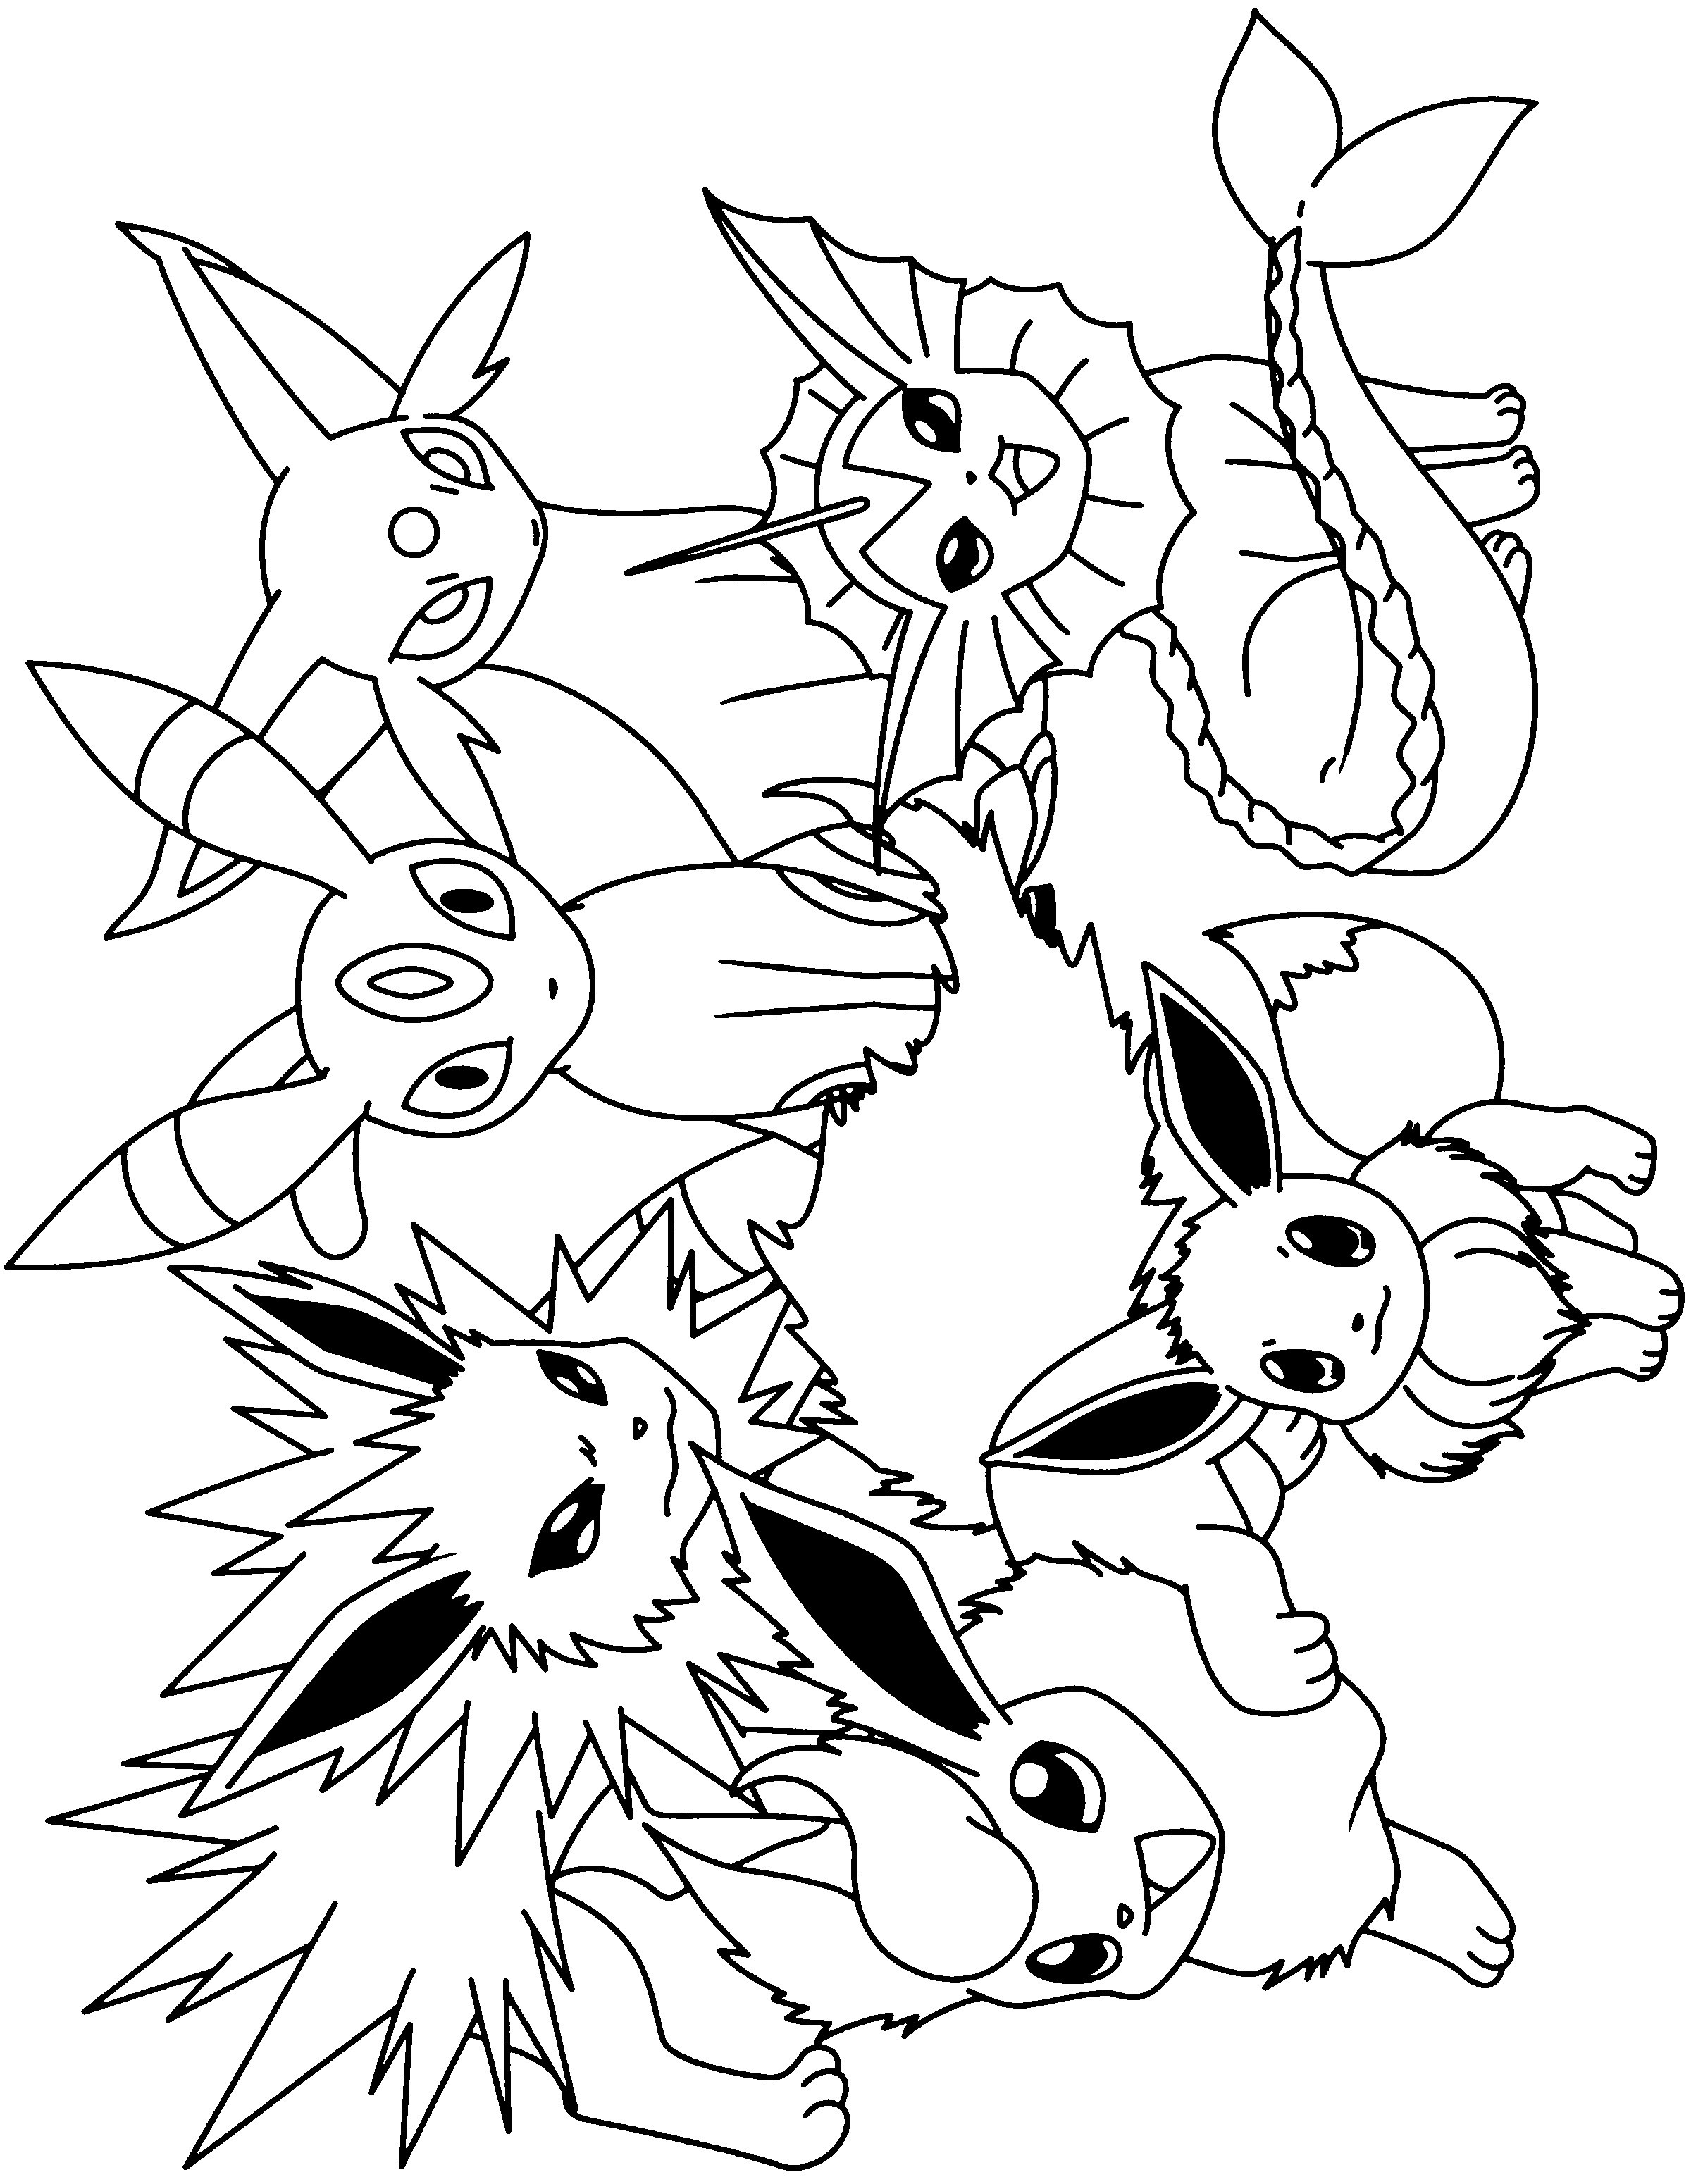 pokemon coloring pages to print pokemon dragon manga coloring pages for kids printable free pokemon print pages coloring to